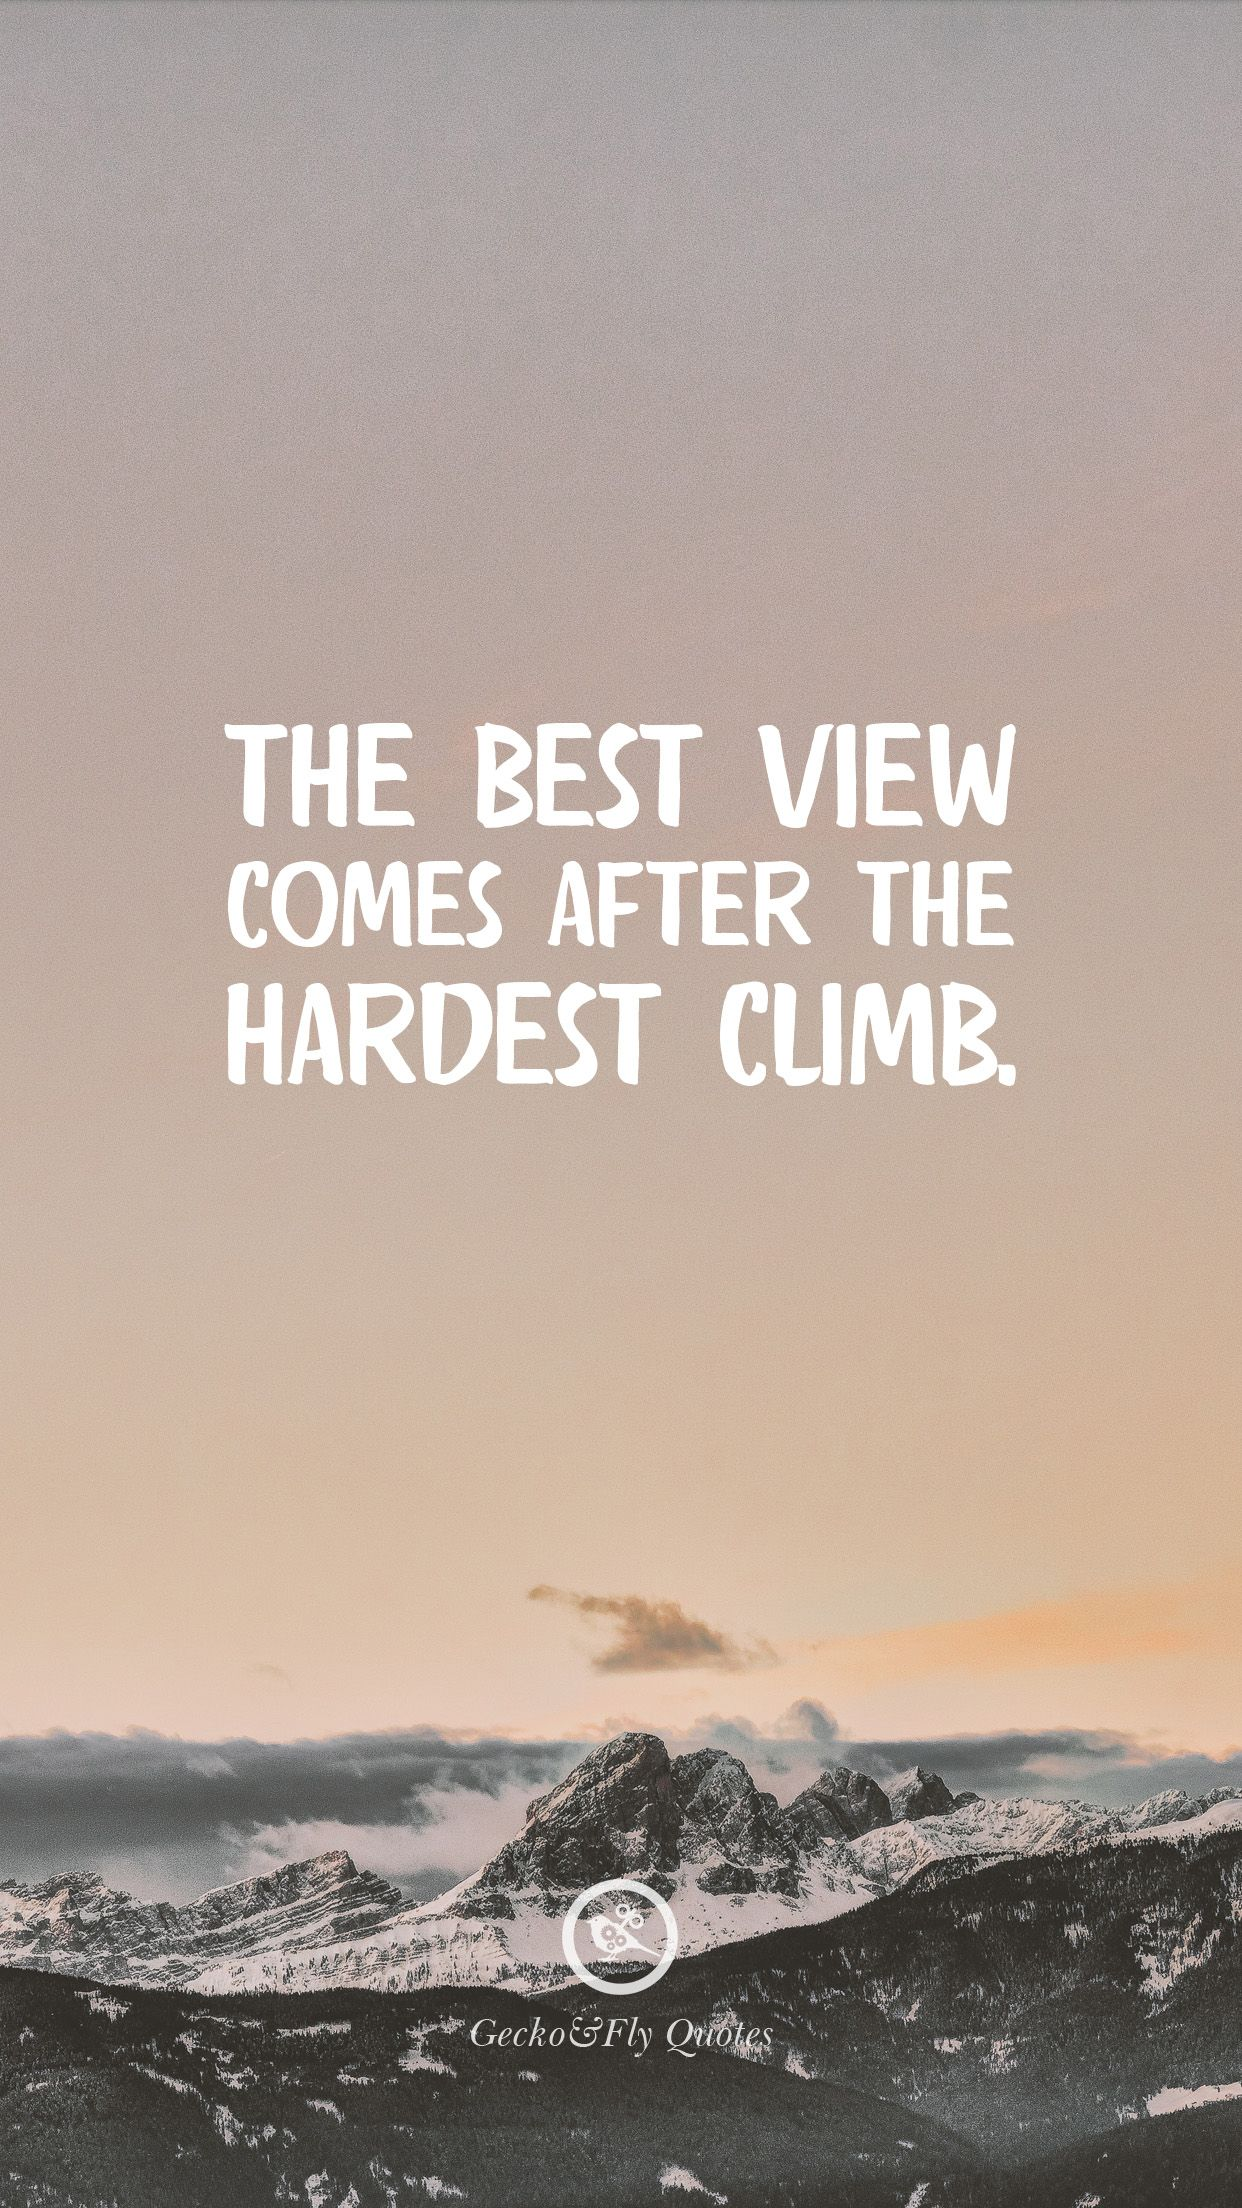 100 Inspirational And Motivational iPhone / Android HD